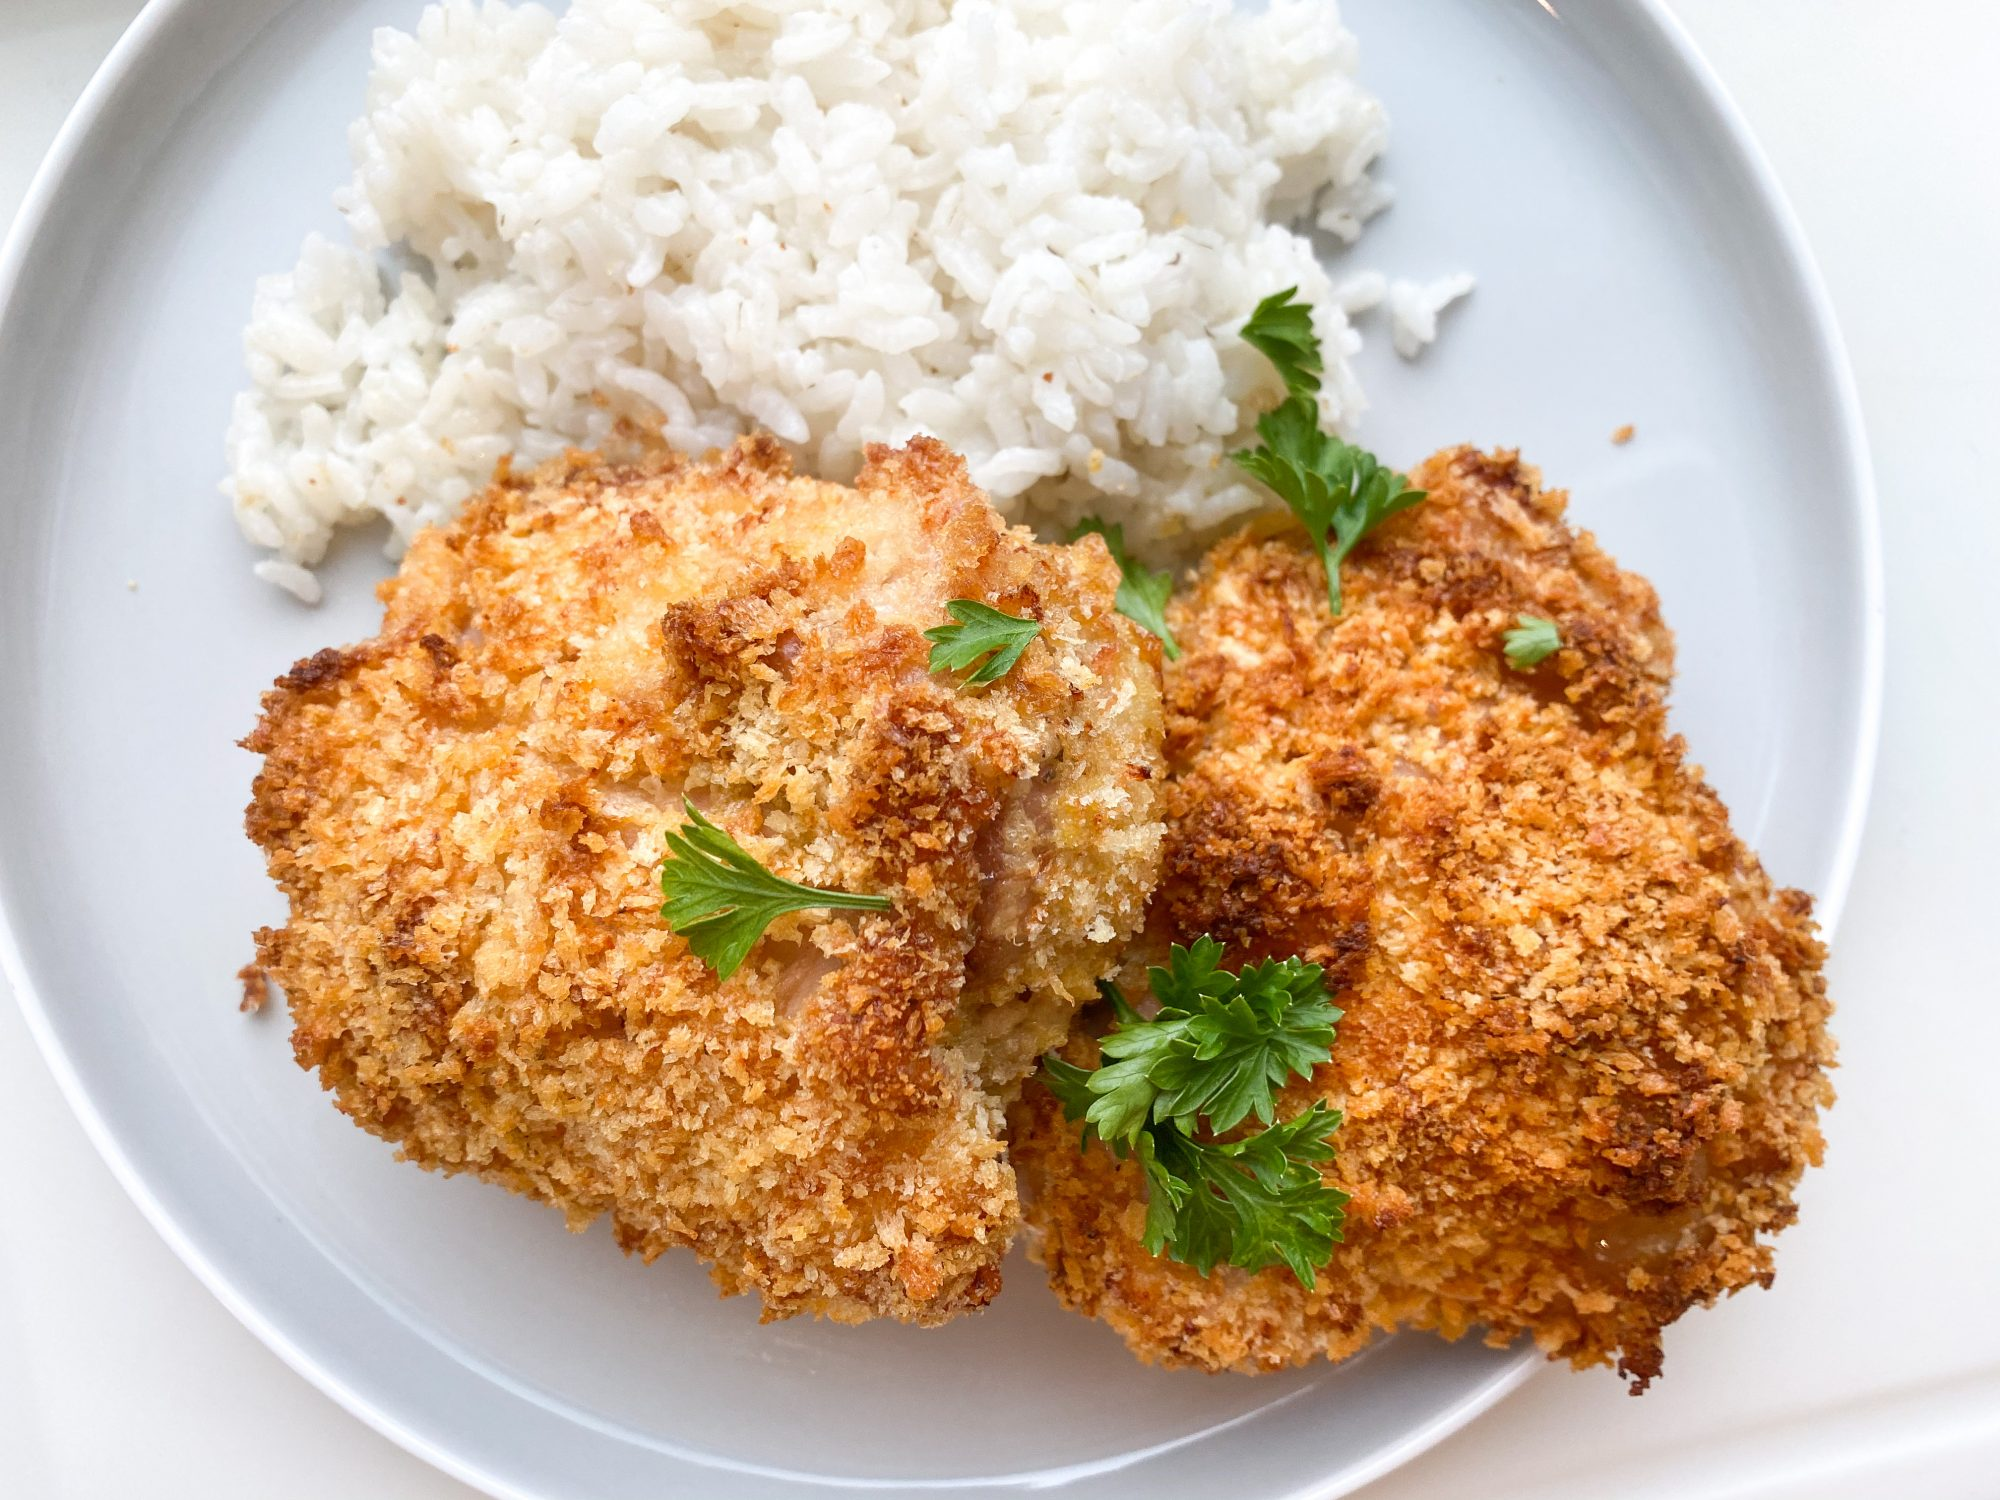 oven fried chicken thighs with crispy coating on a plate with white rice